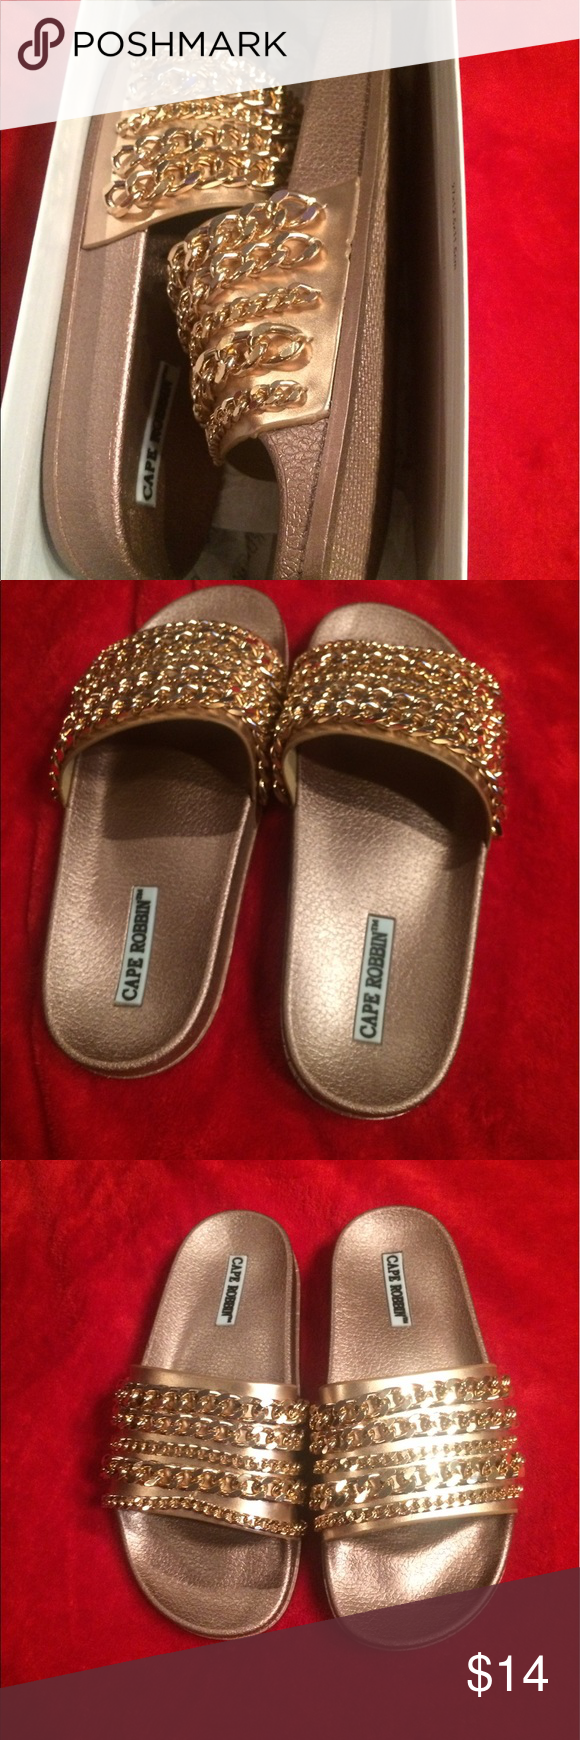 4671226b047 Brand New Fashion Nova Slides They have Gold Chains and They are a size 6  they have never been worn Fashion Nova Shoes Sandals